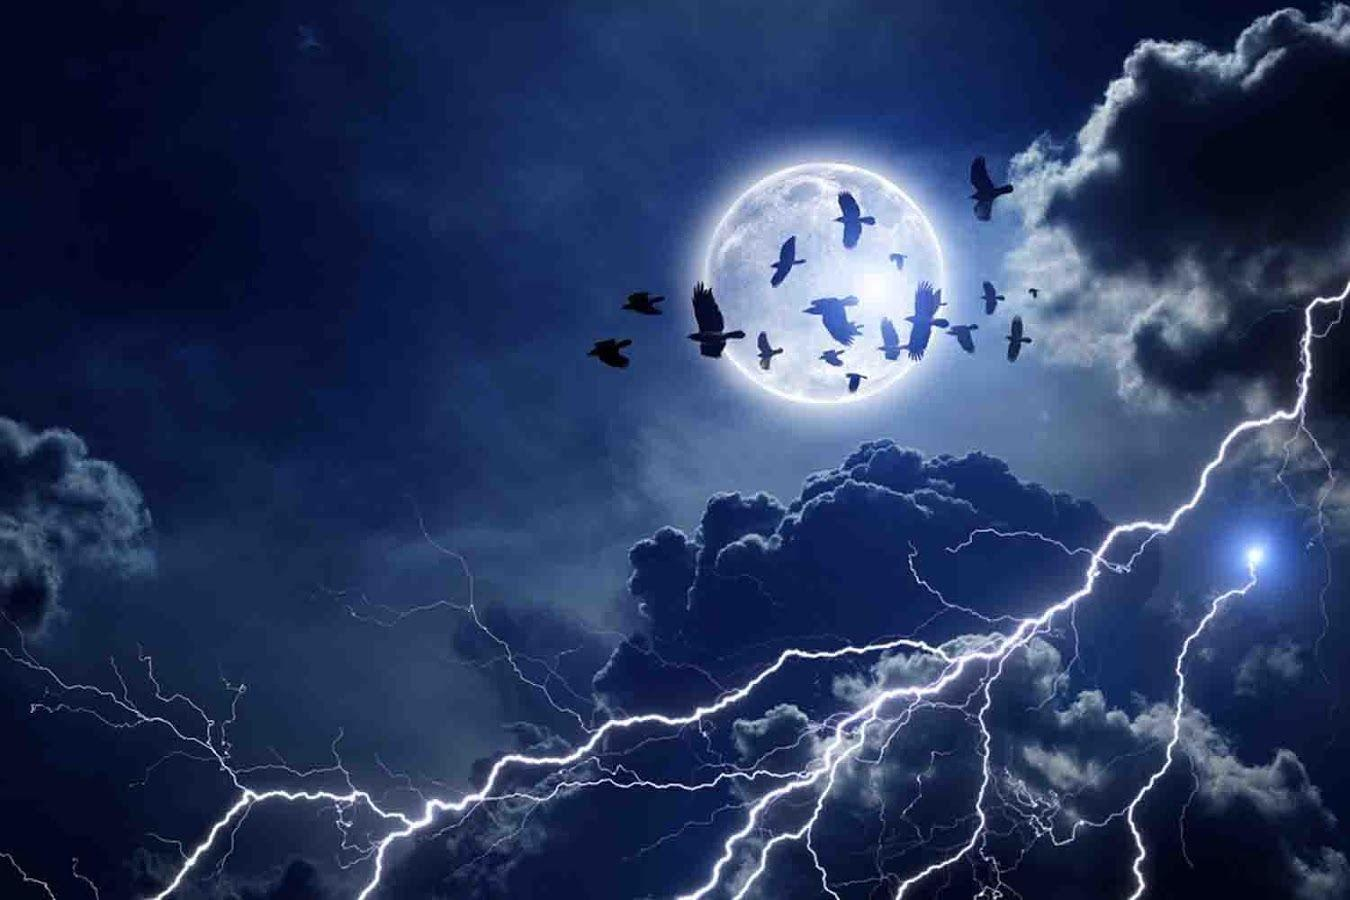 Thunderstorm Hd Wallpapers Apk Download Free News &